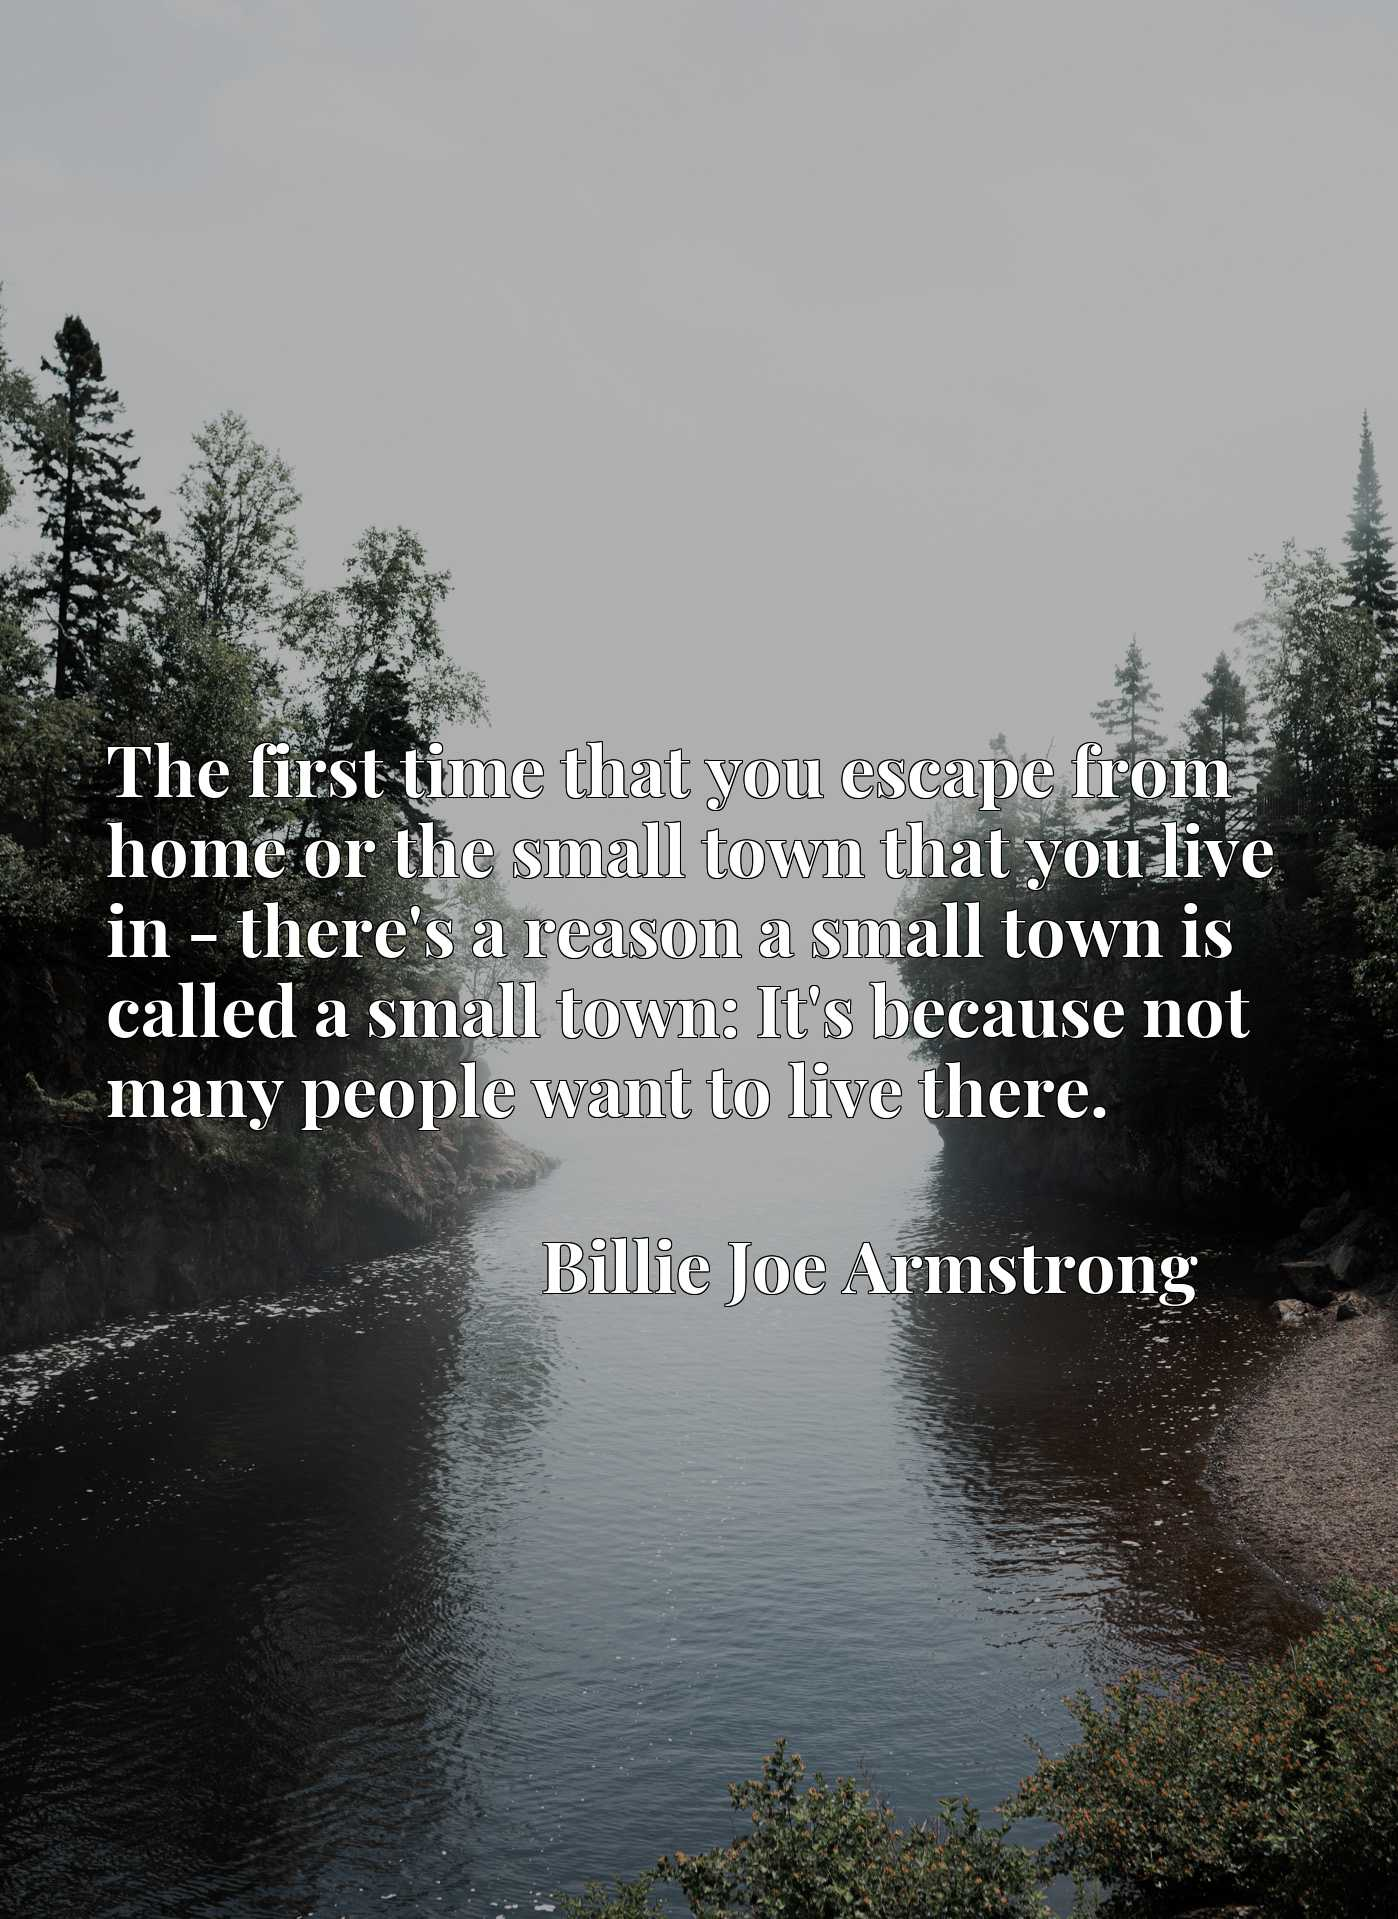 The first time that you escape from home or the small town that you live in - there's a reason a small town is called a small town: It's because not many people want to live there.